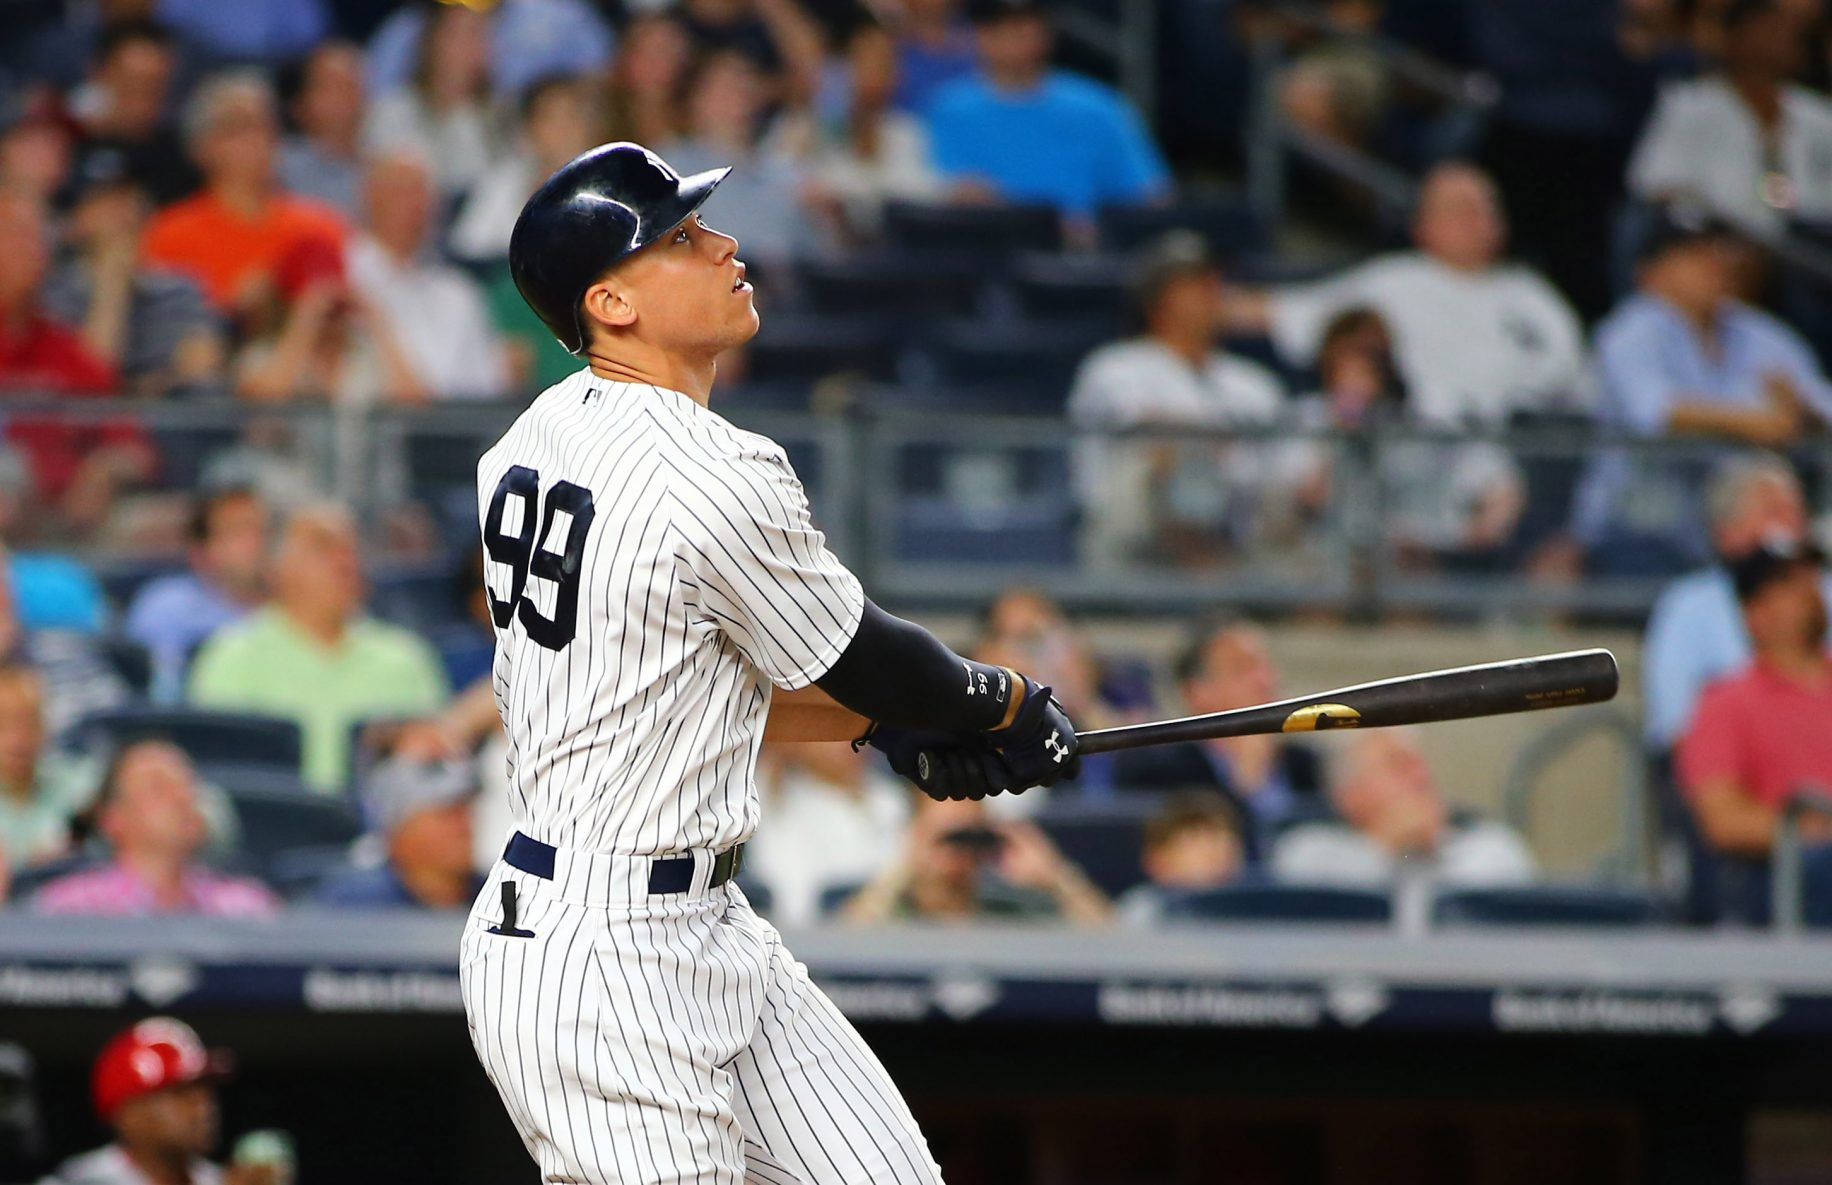 New York Yankees Bomber Buzz, 6/21/17: Home Run Derby For Aaron Judge?